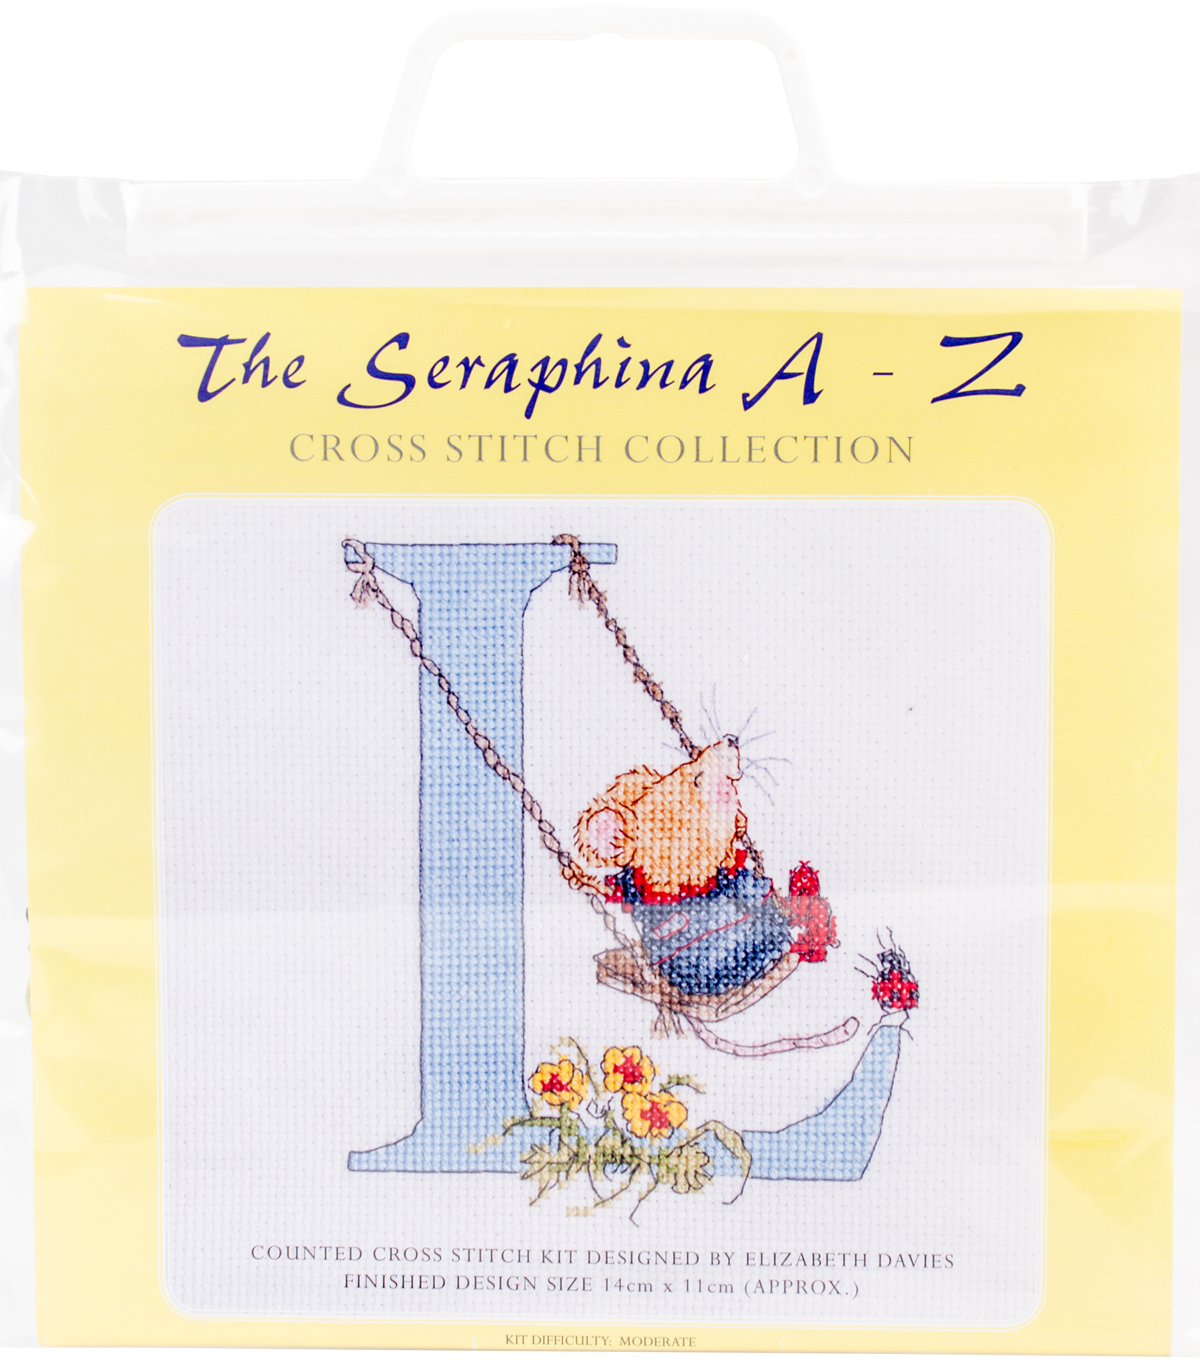 CWOC/Seraphina Counted Cross Stitch Kit 5.5\u0022X4.25\u0022-L